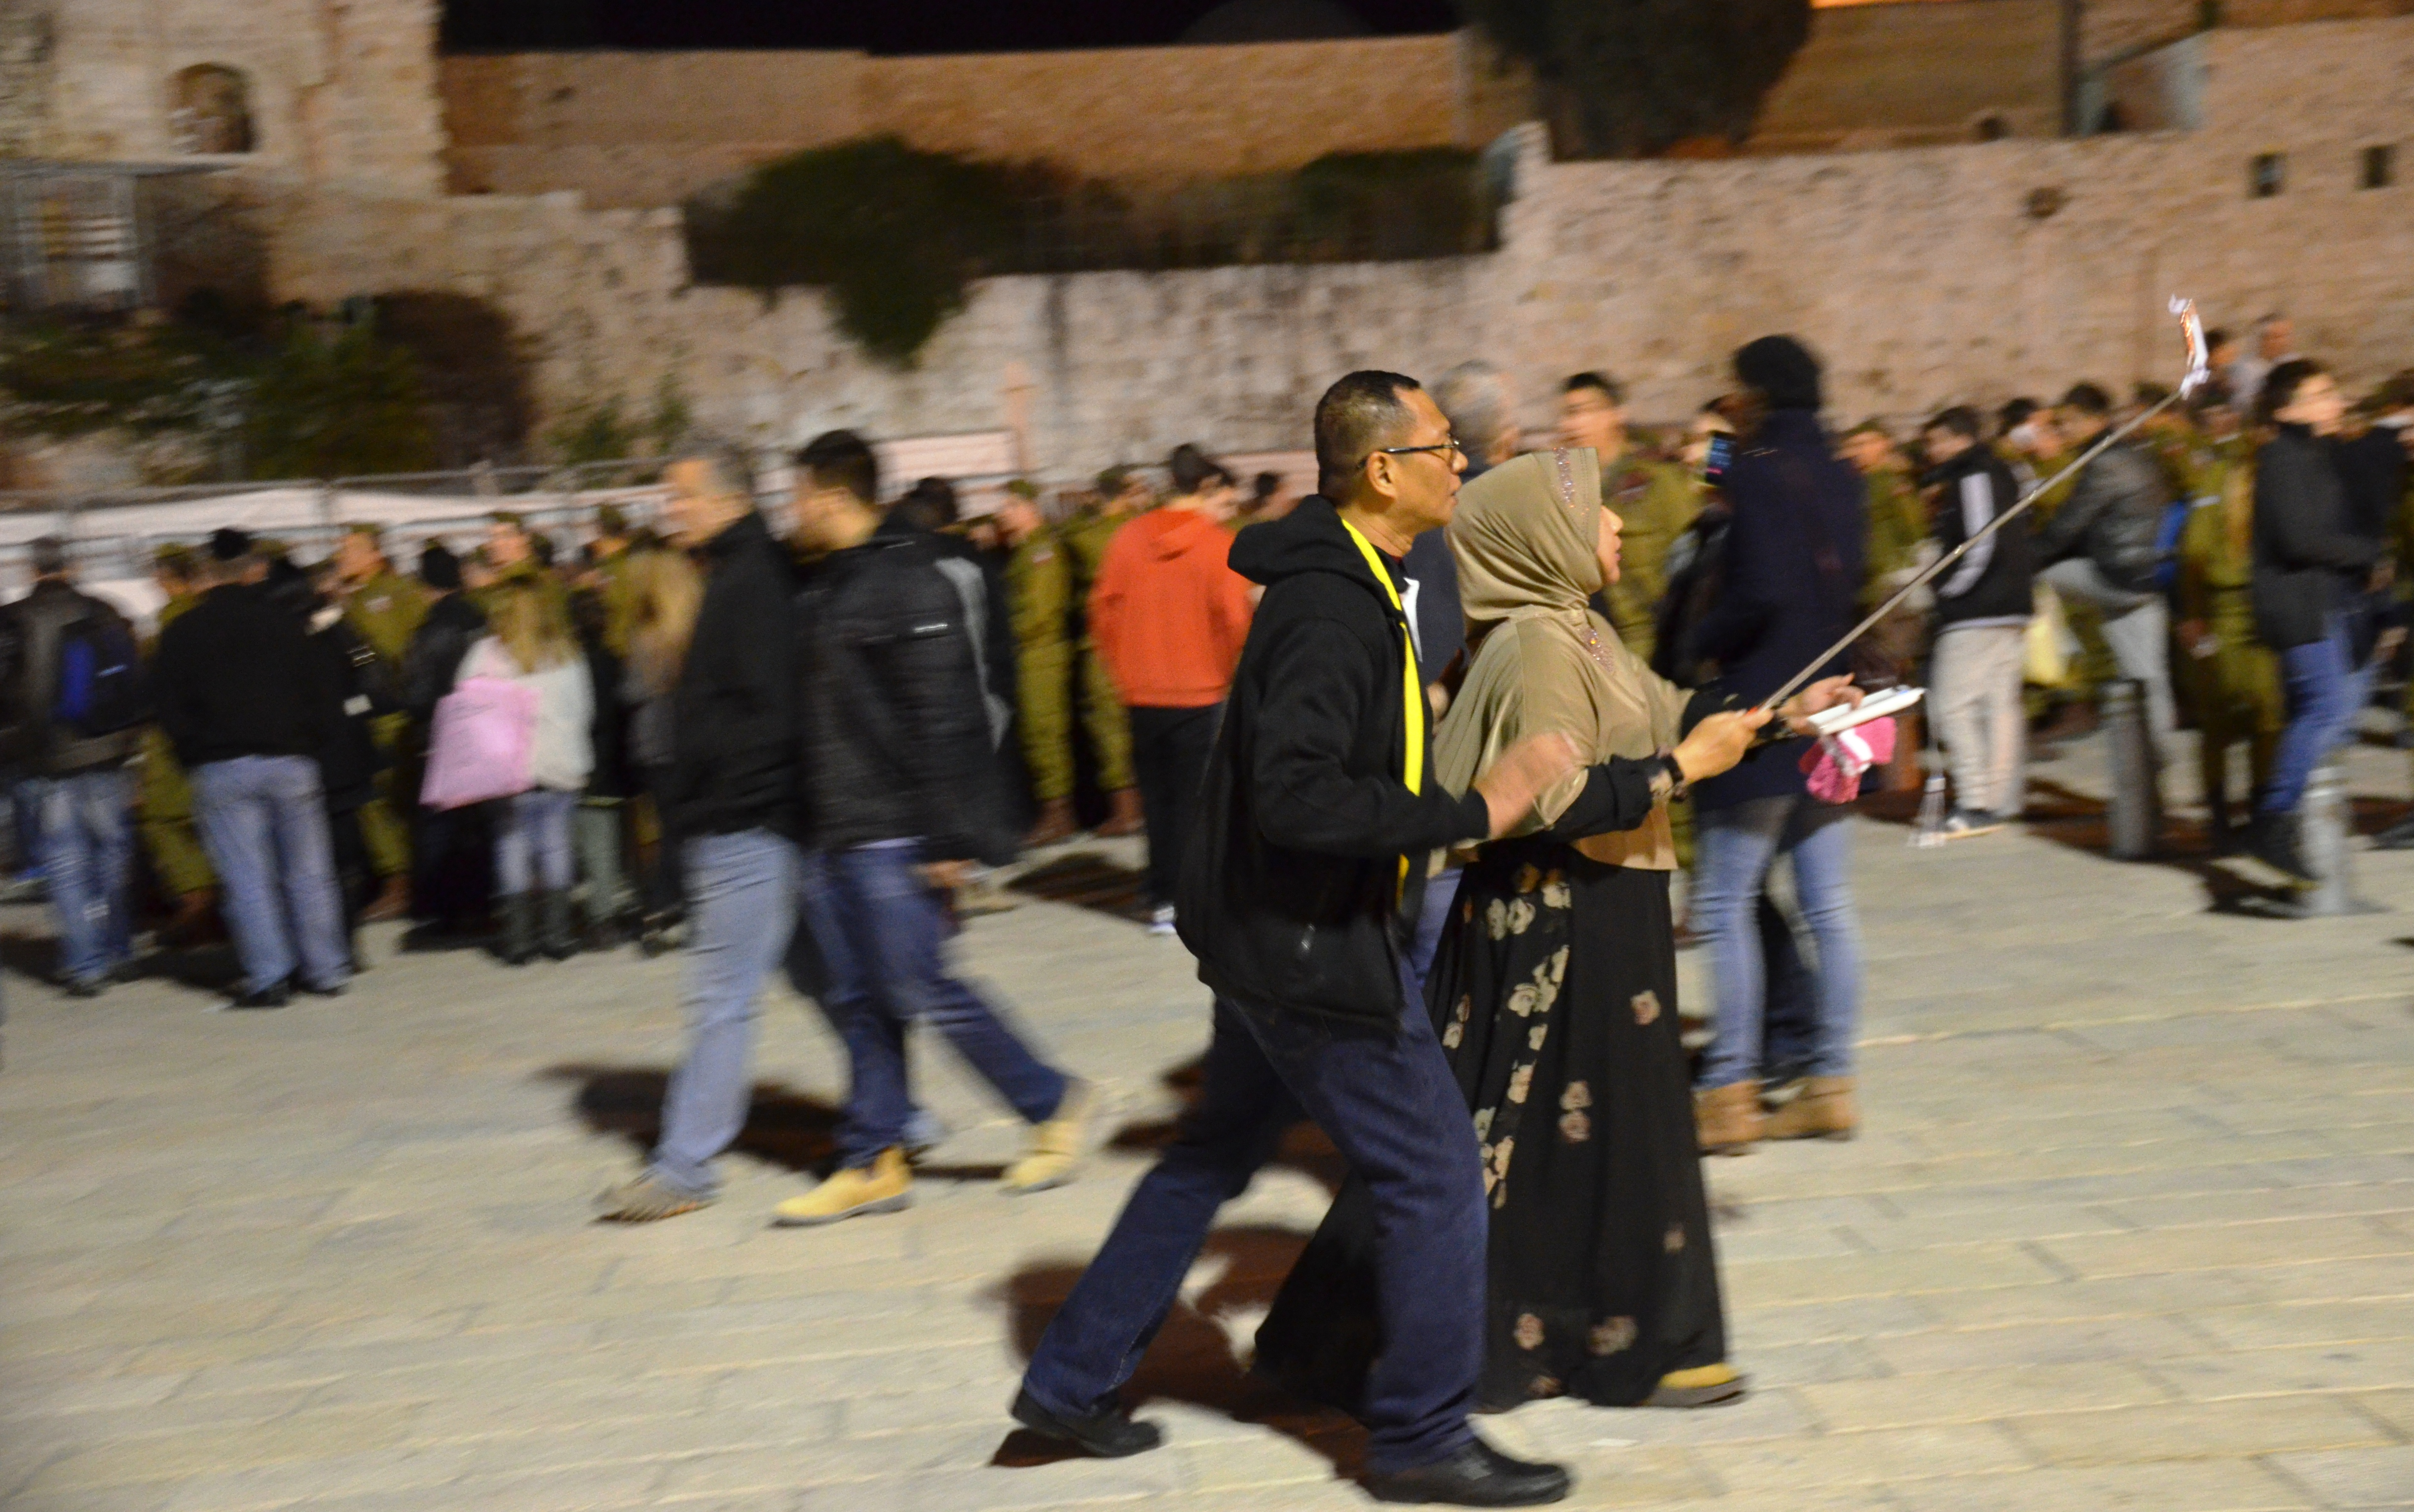 watermarked Muslim taking selfie at Western wall